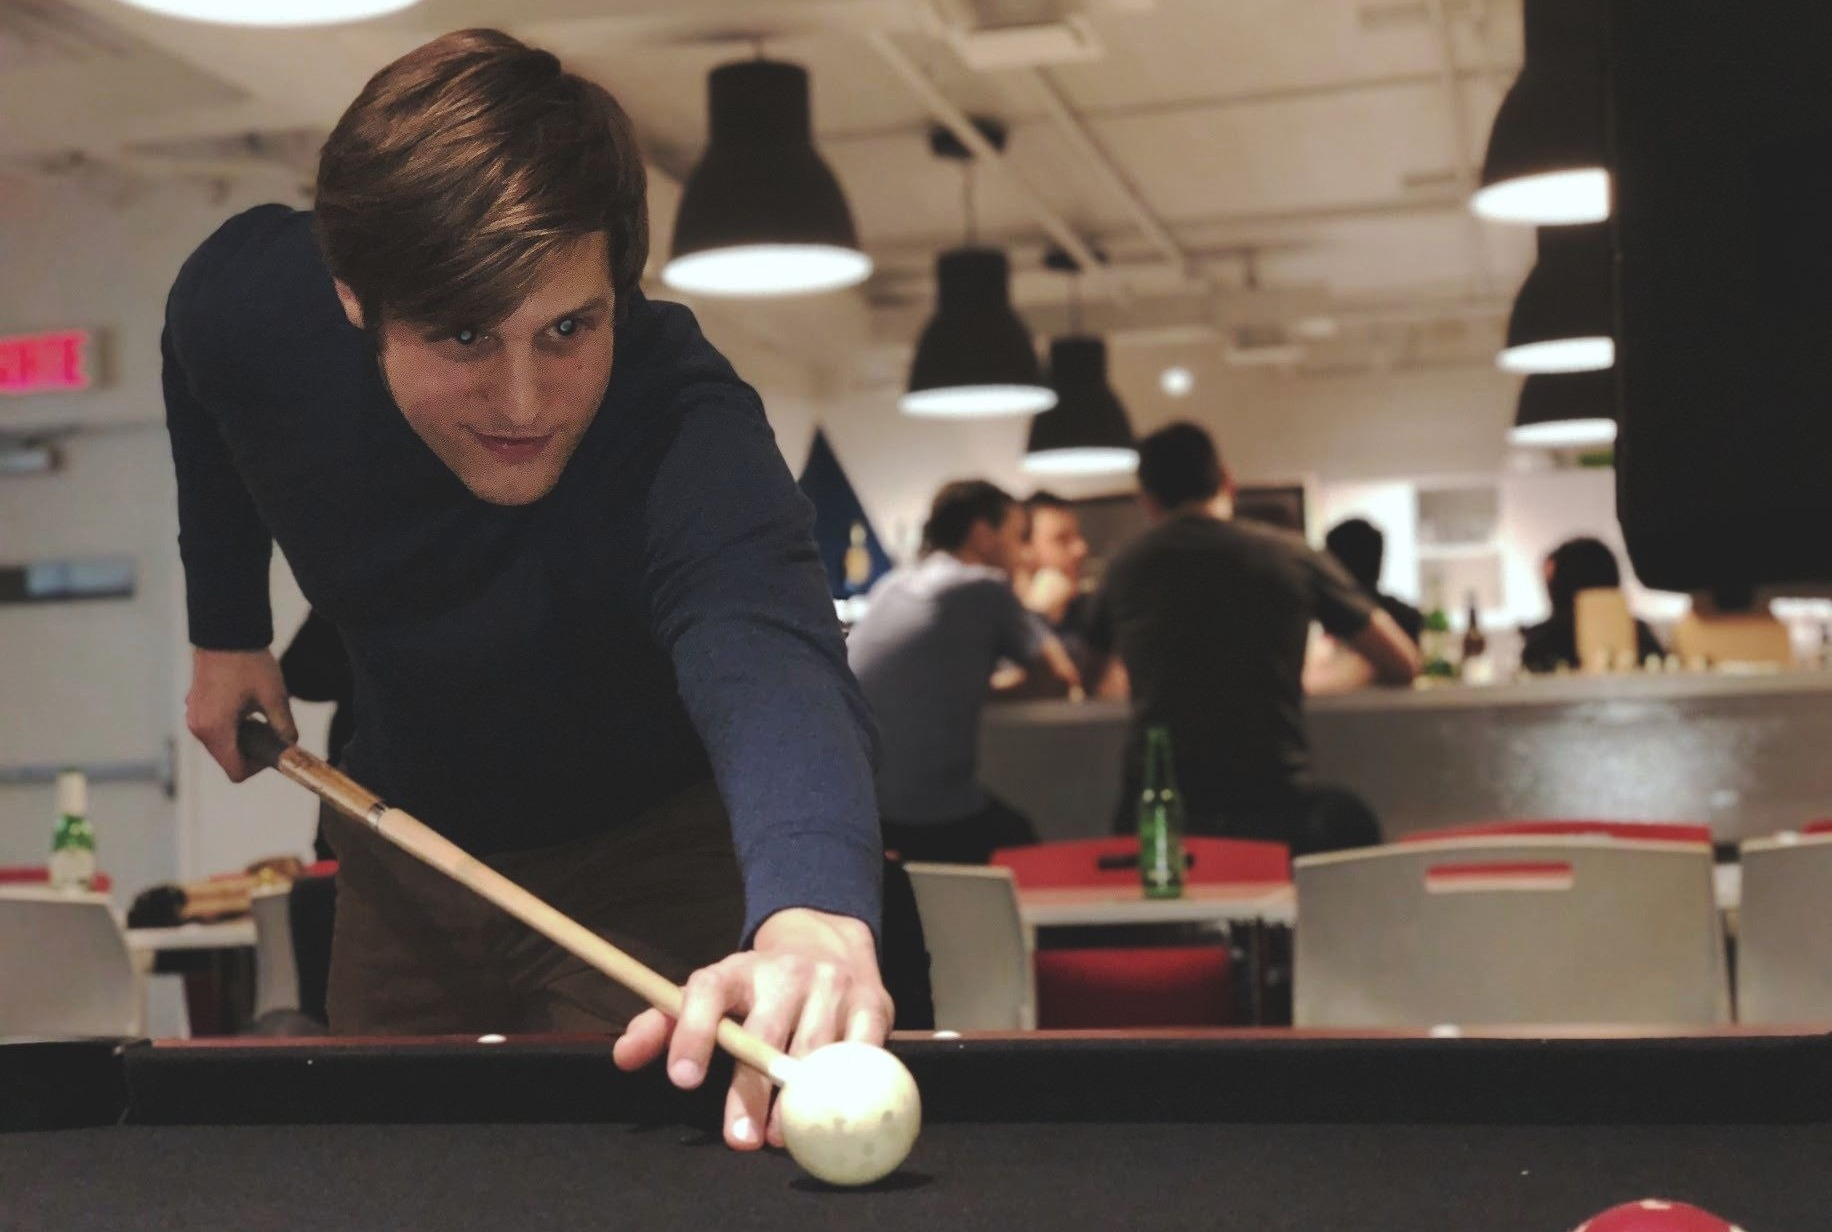 Pierre playing pool copy